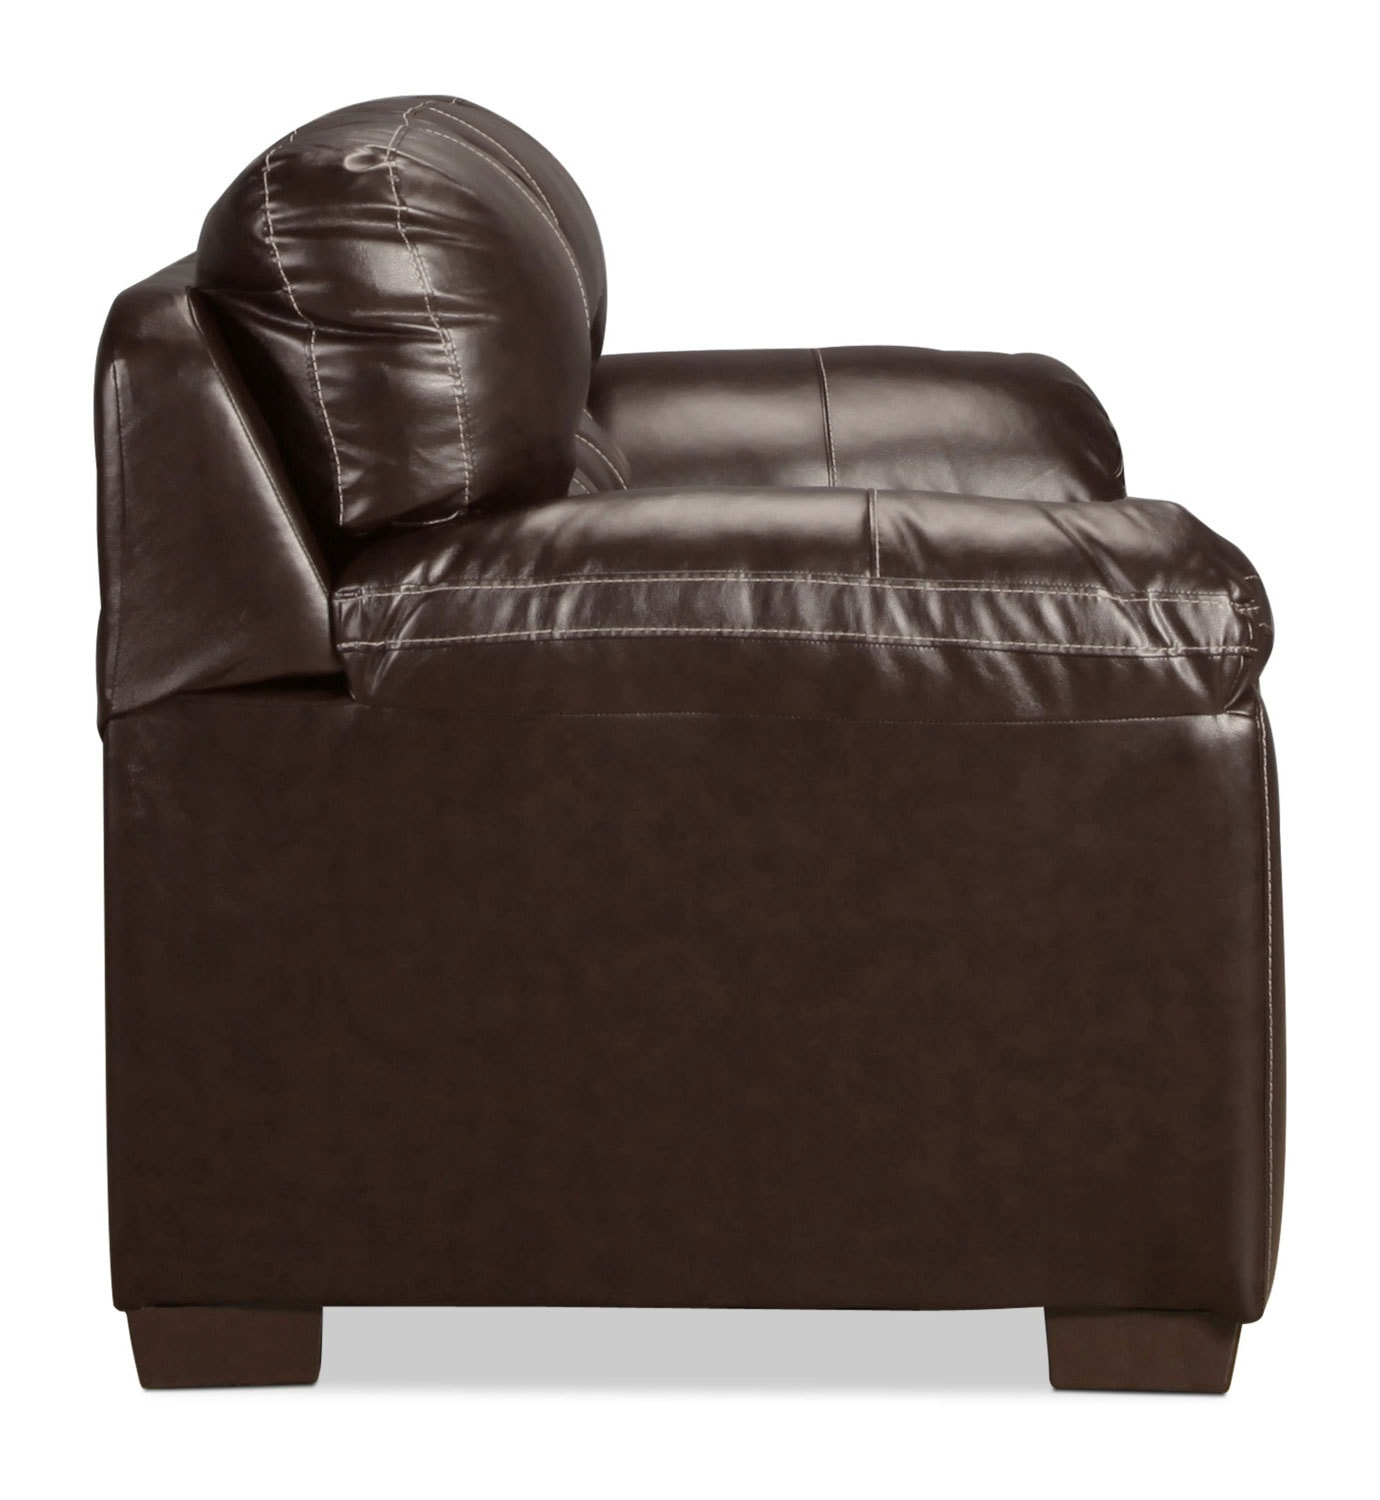 Rigley loveseat chocolate levin furniture for Living room furniture 0 finance